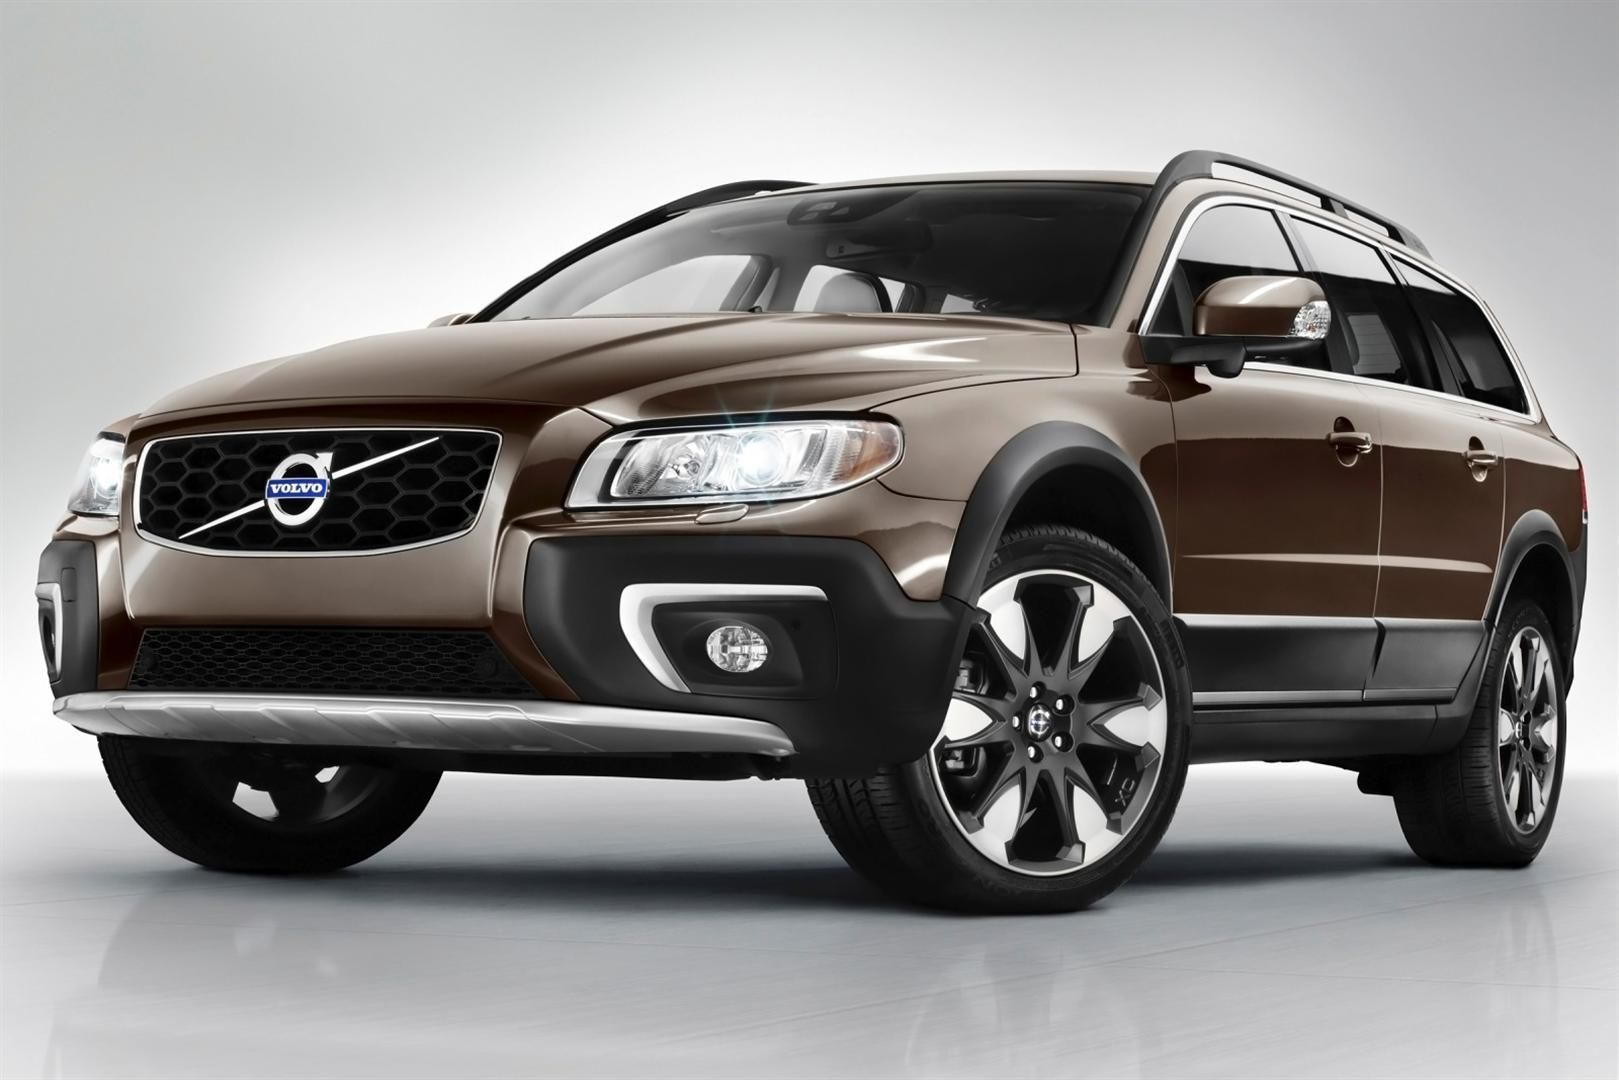 67 All New 2020 All Volvo Xc70 New Concept